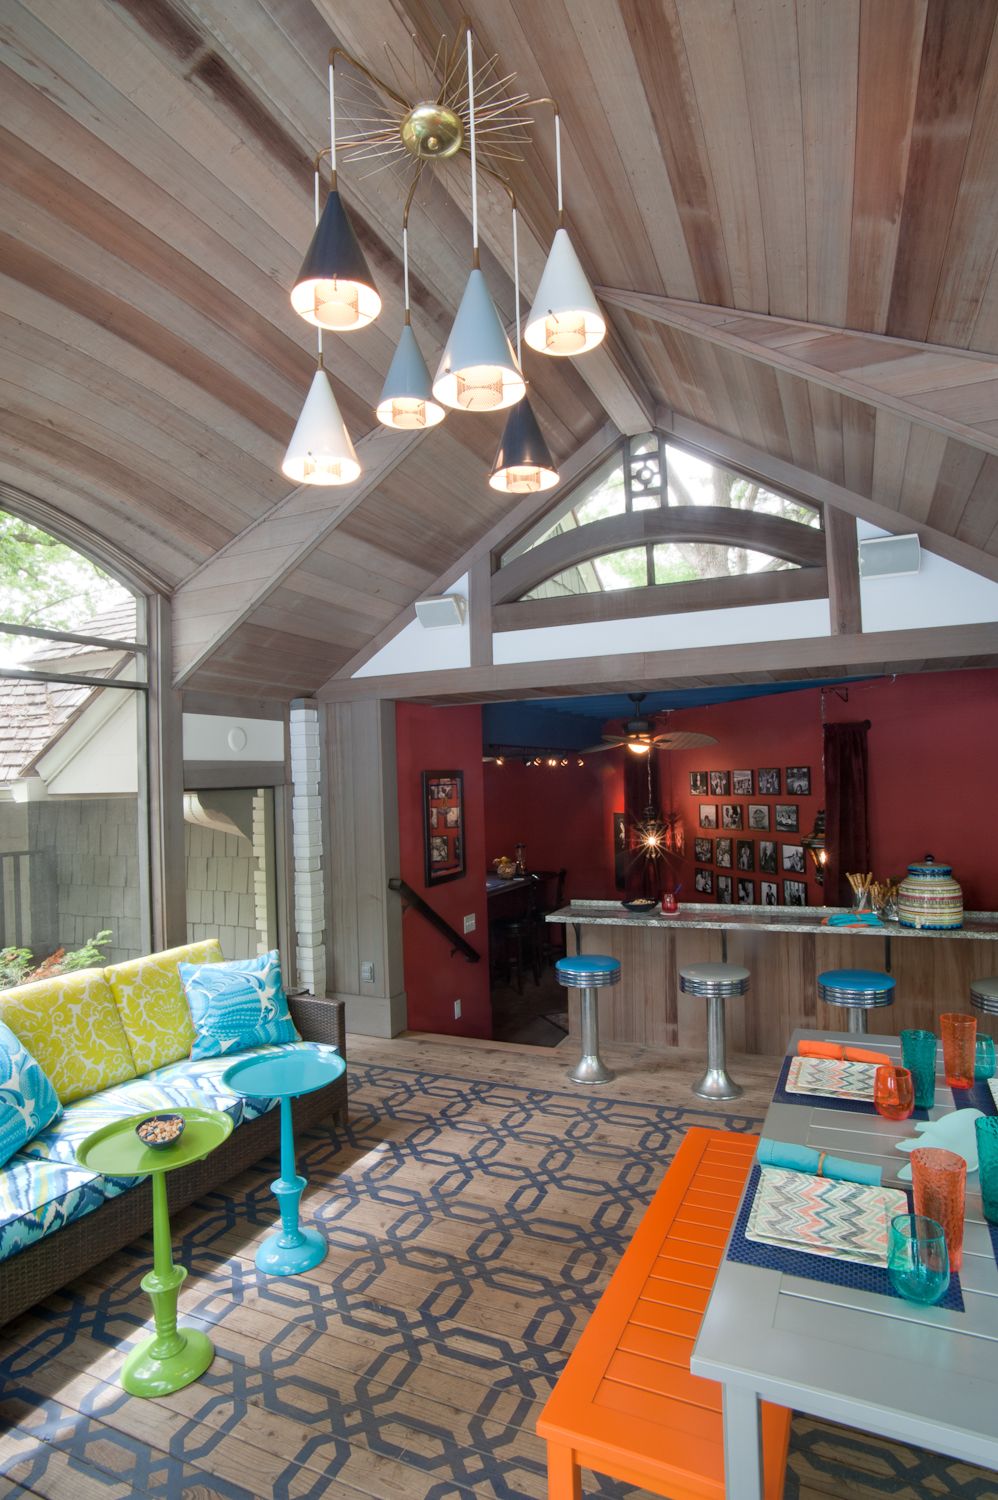 Pool house, 2014 ASID Showcase Home